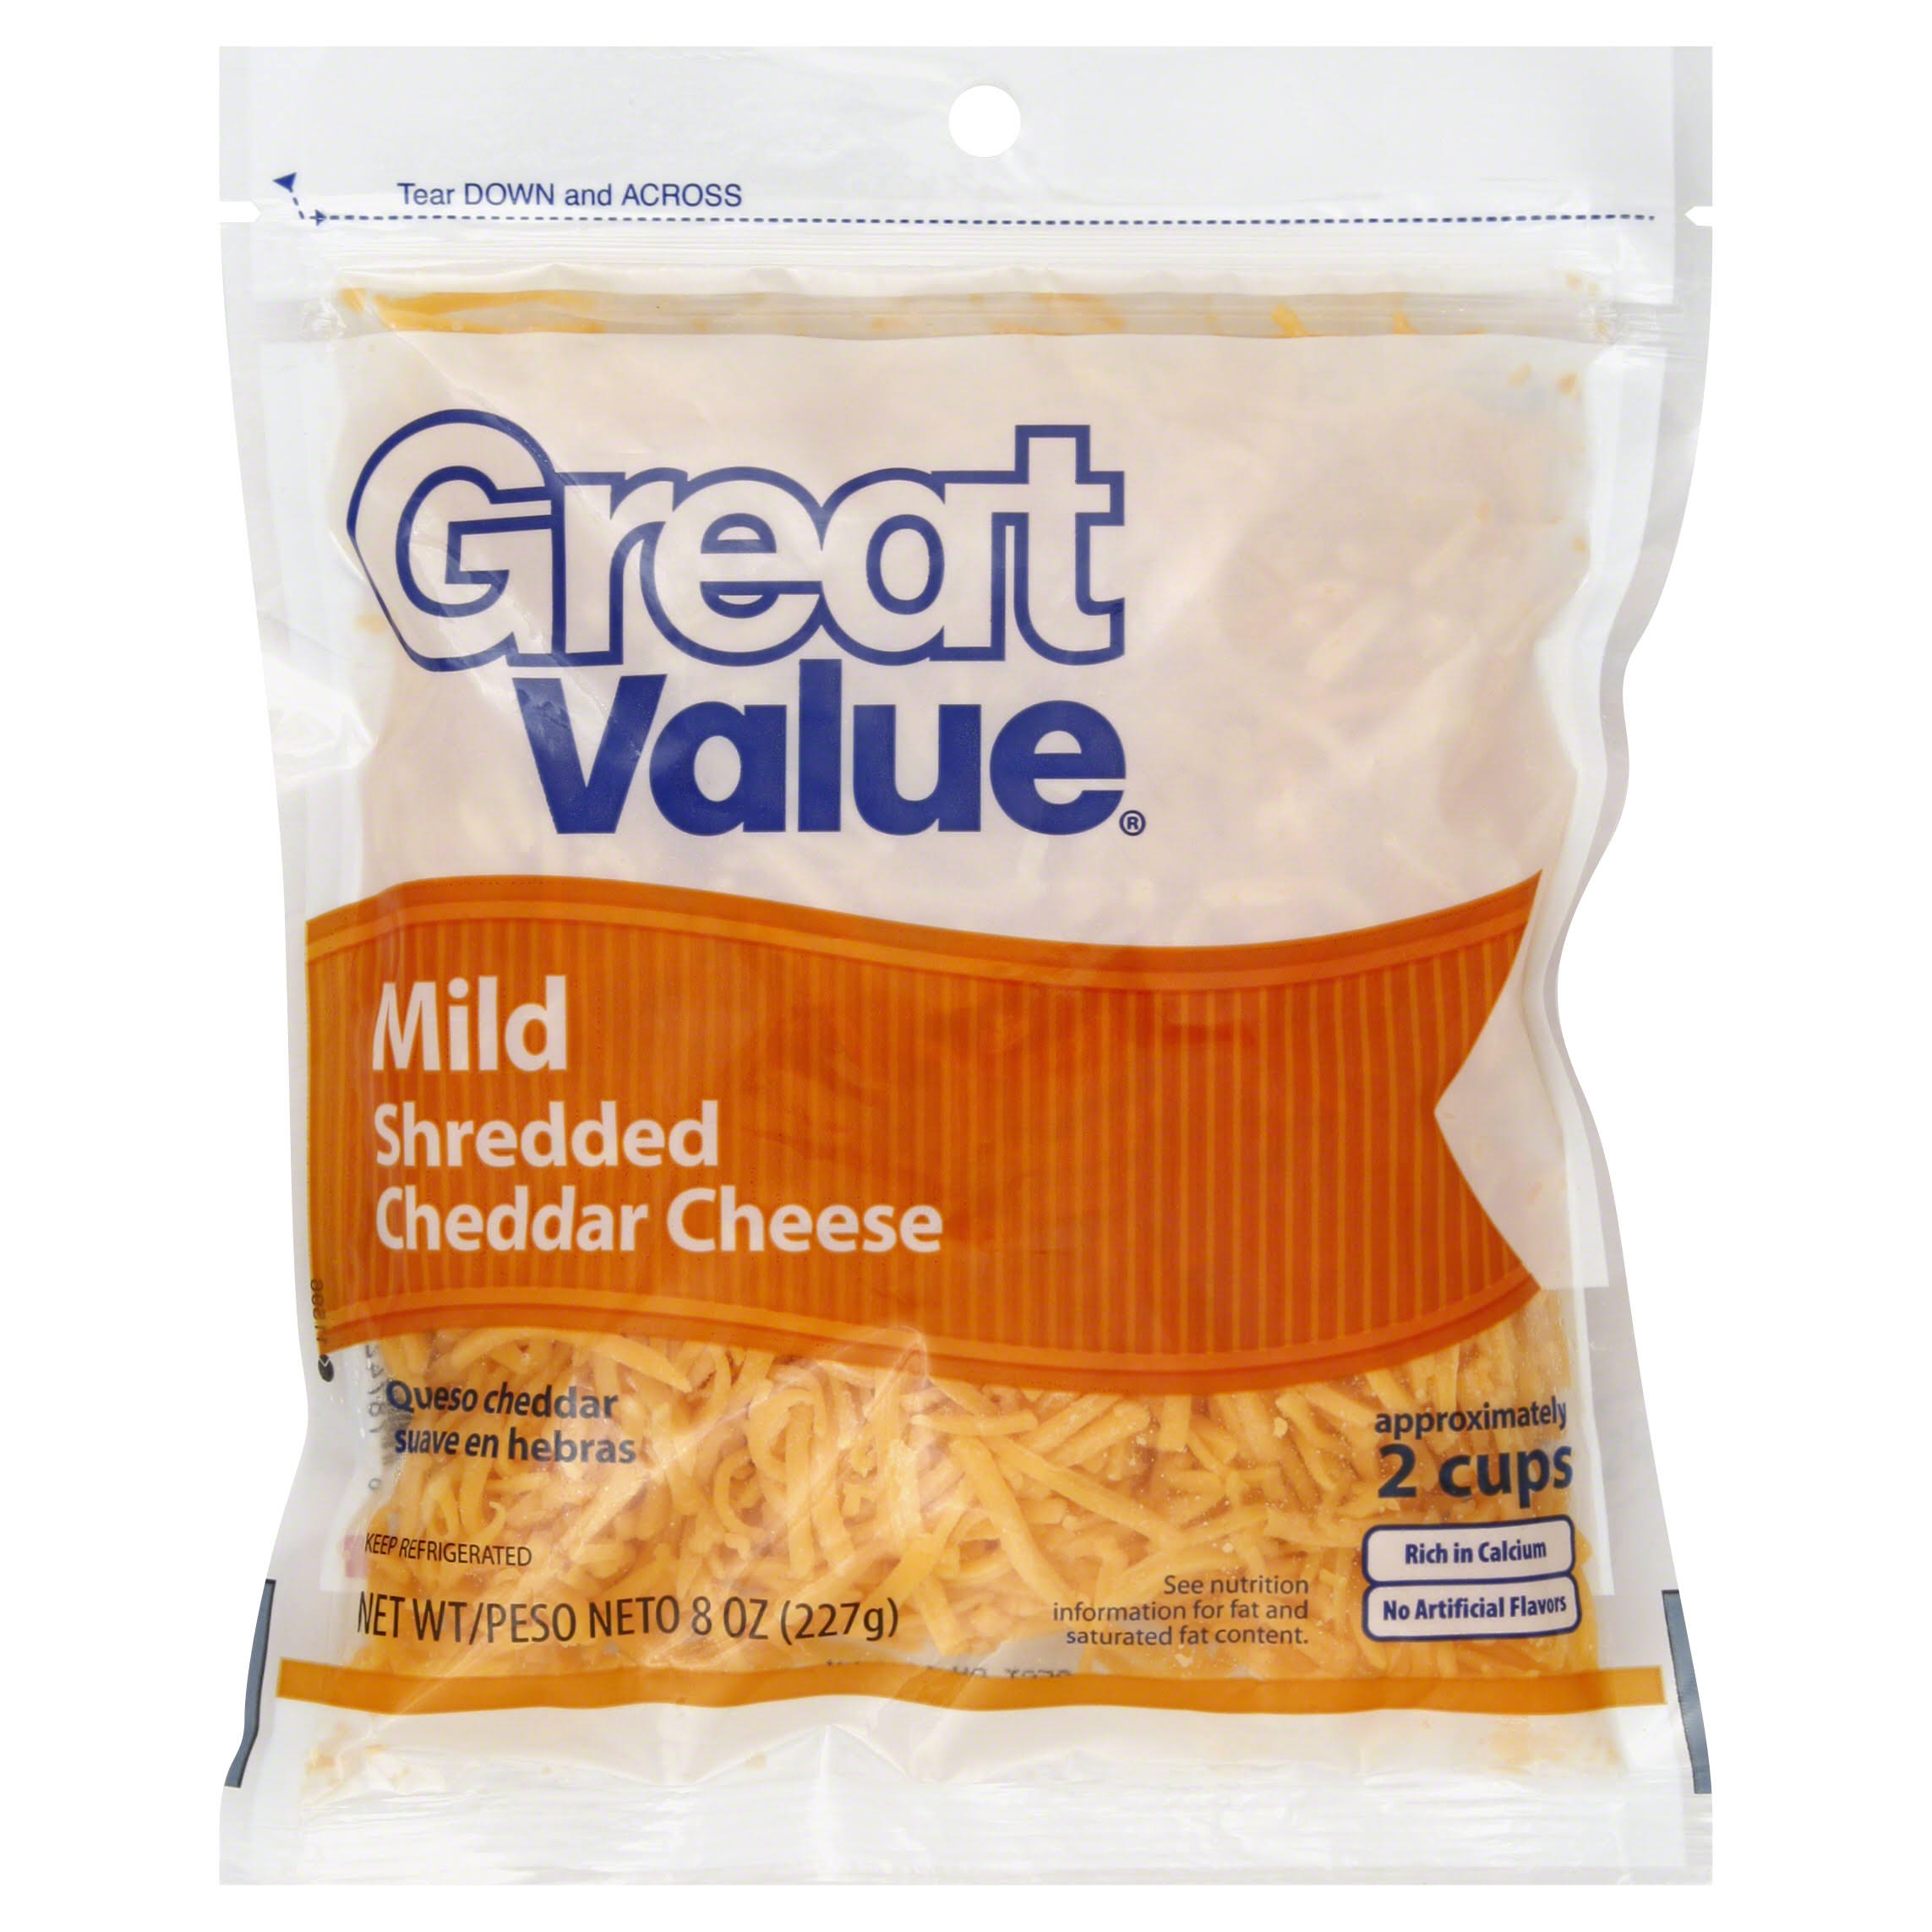 Great Value Shredded Cheese, Mild Cheddar - 8 oz